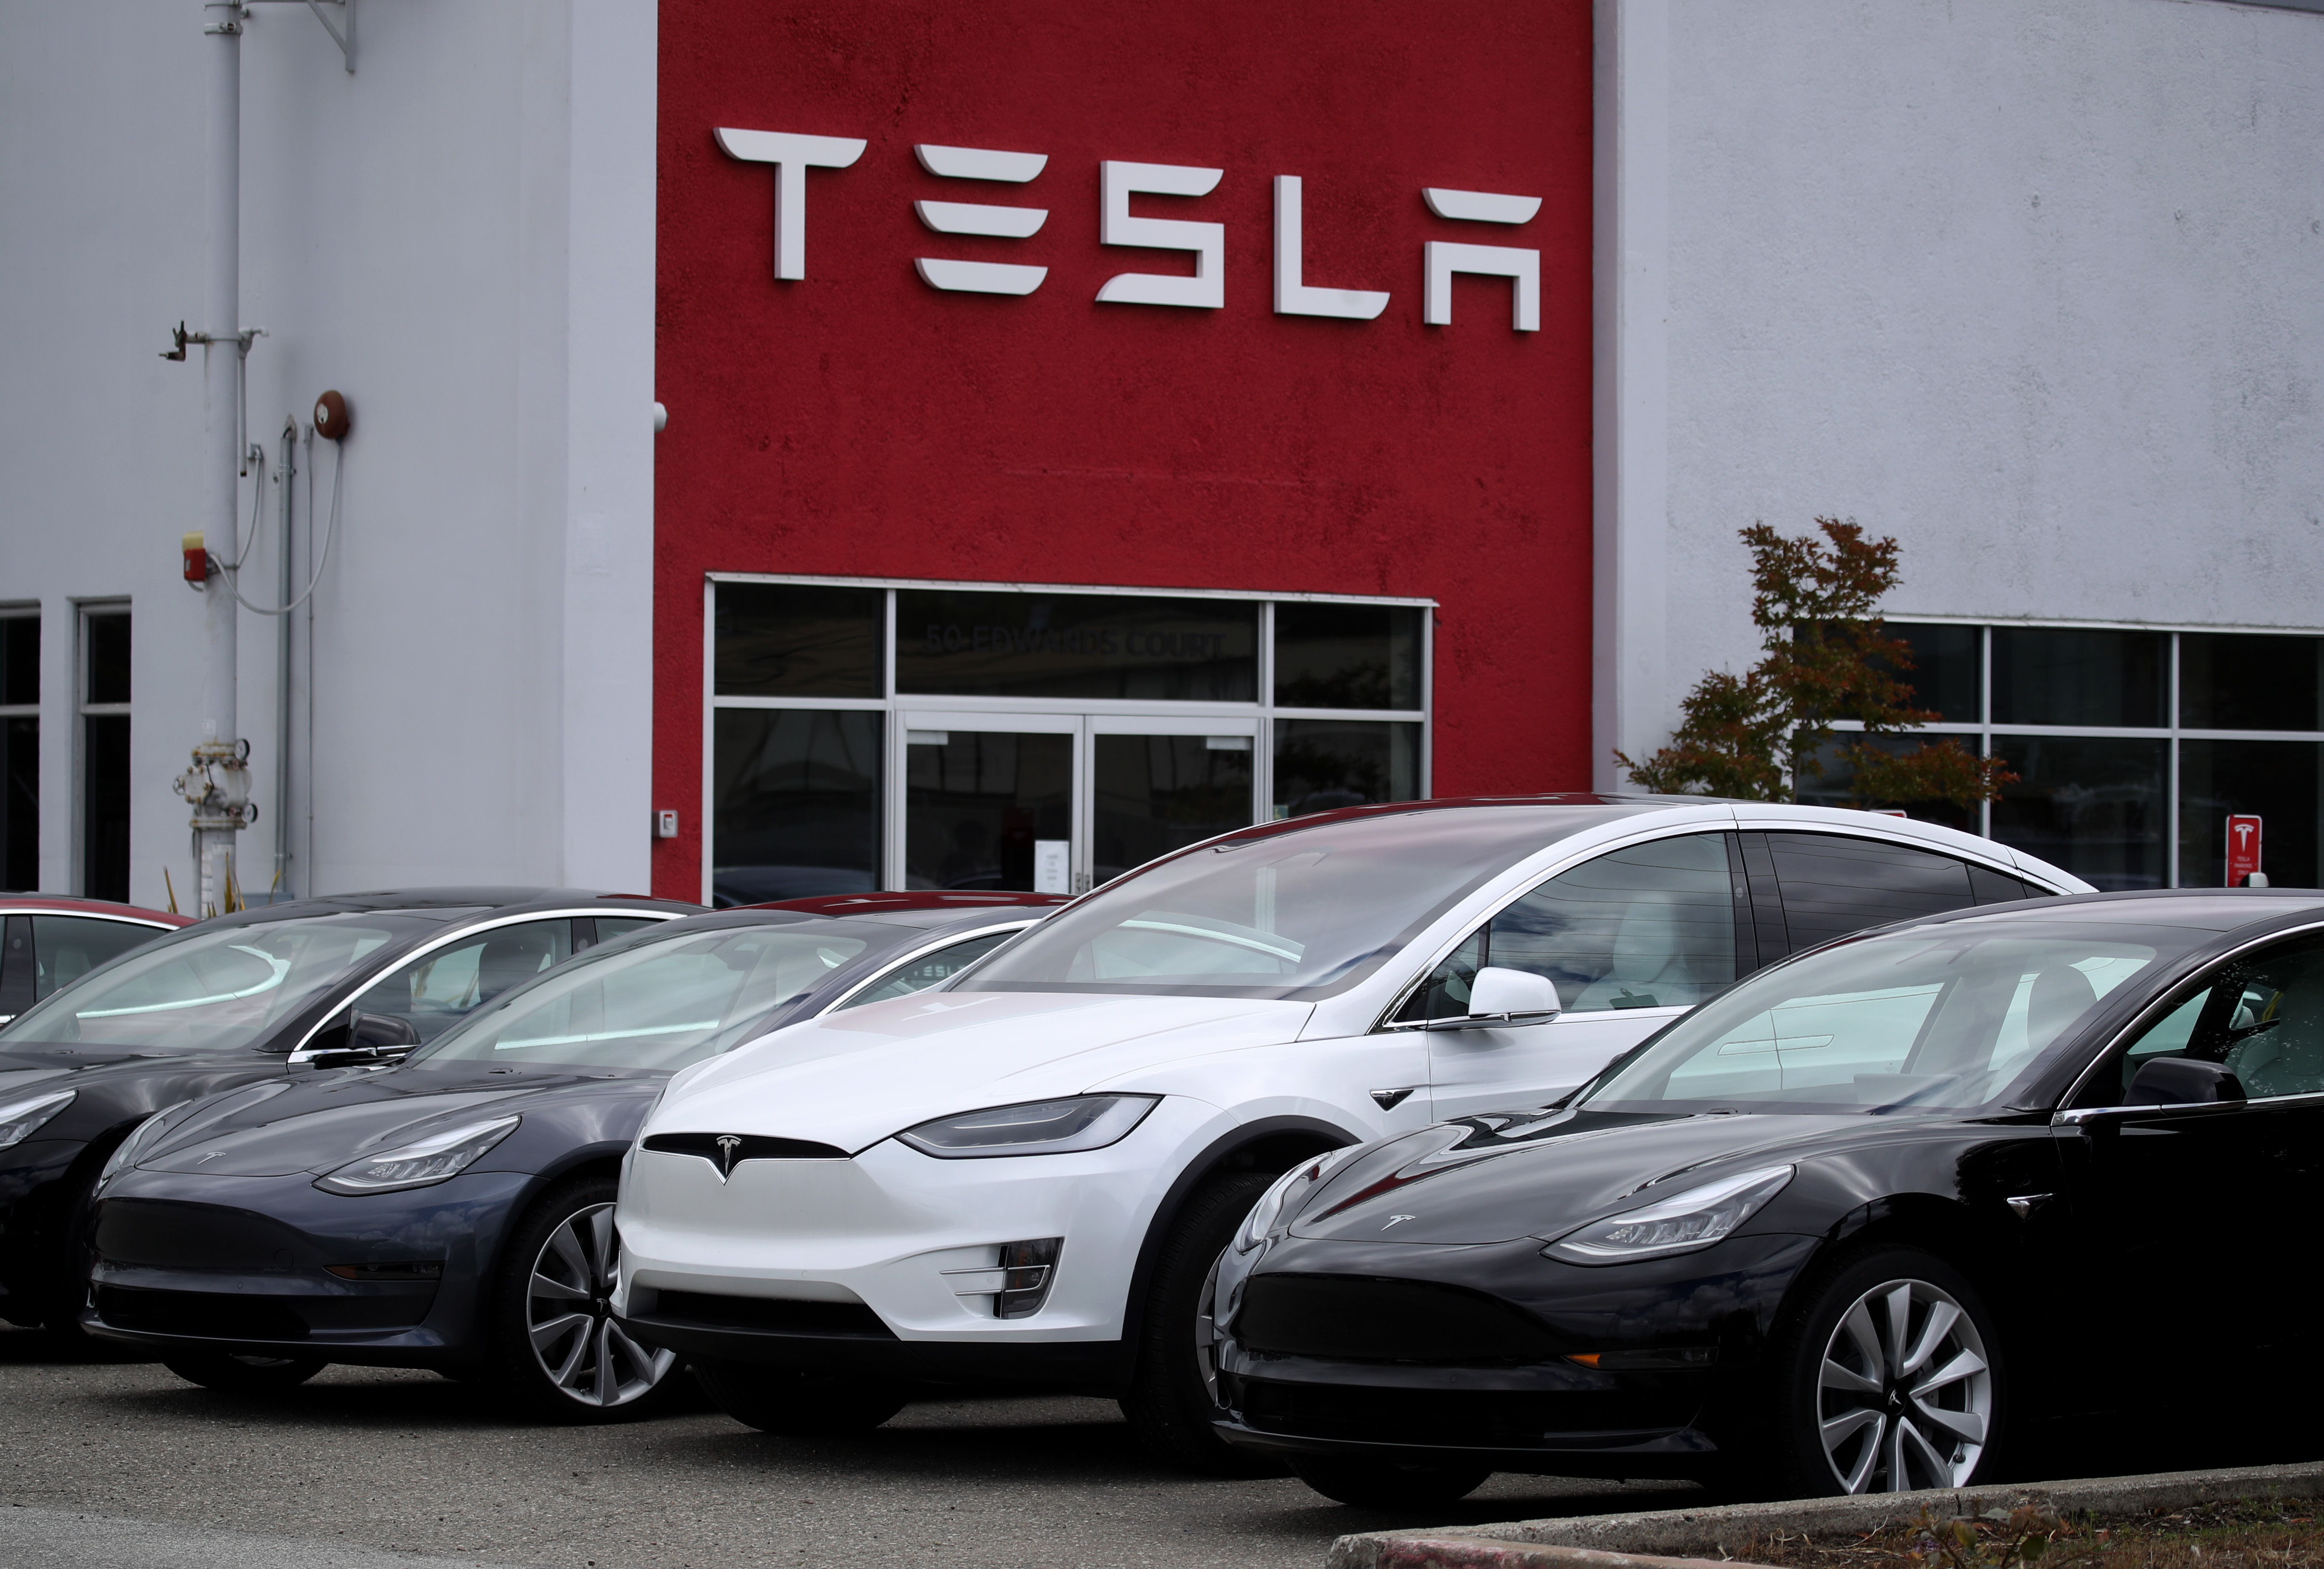 Tesla focuses on service with 25 new service centers in Q2